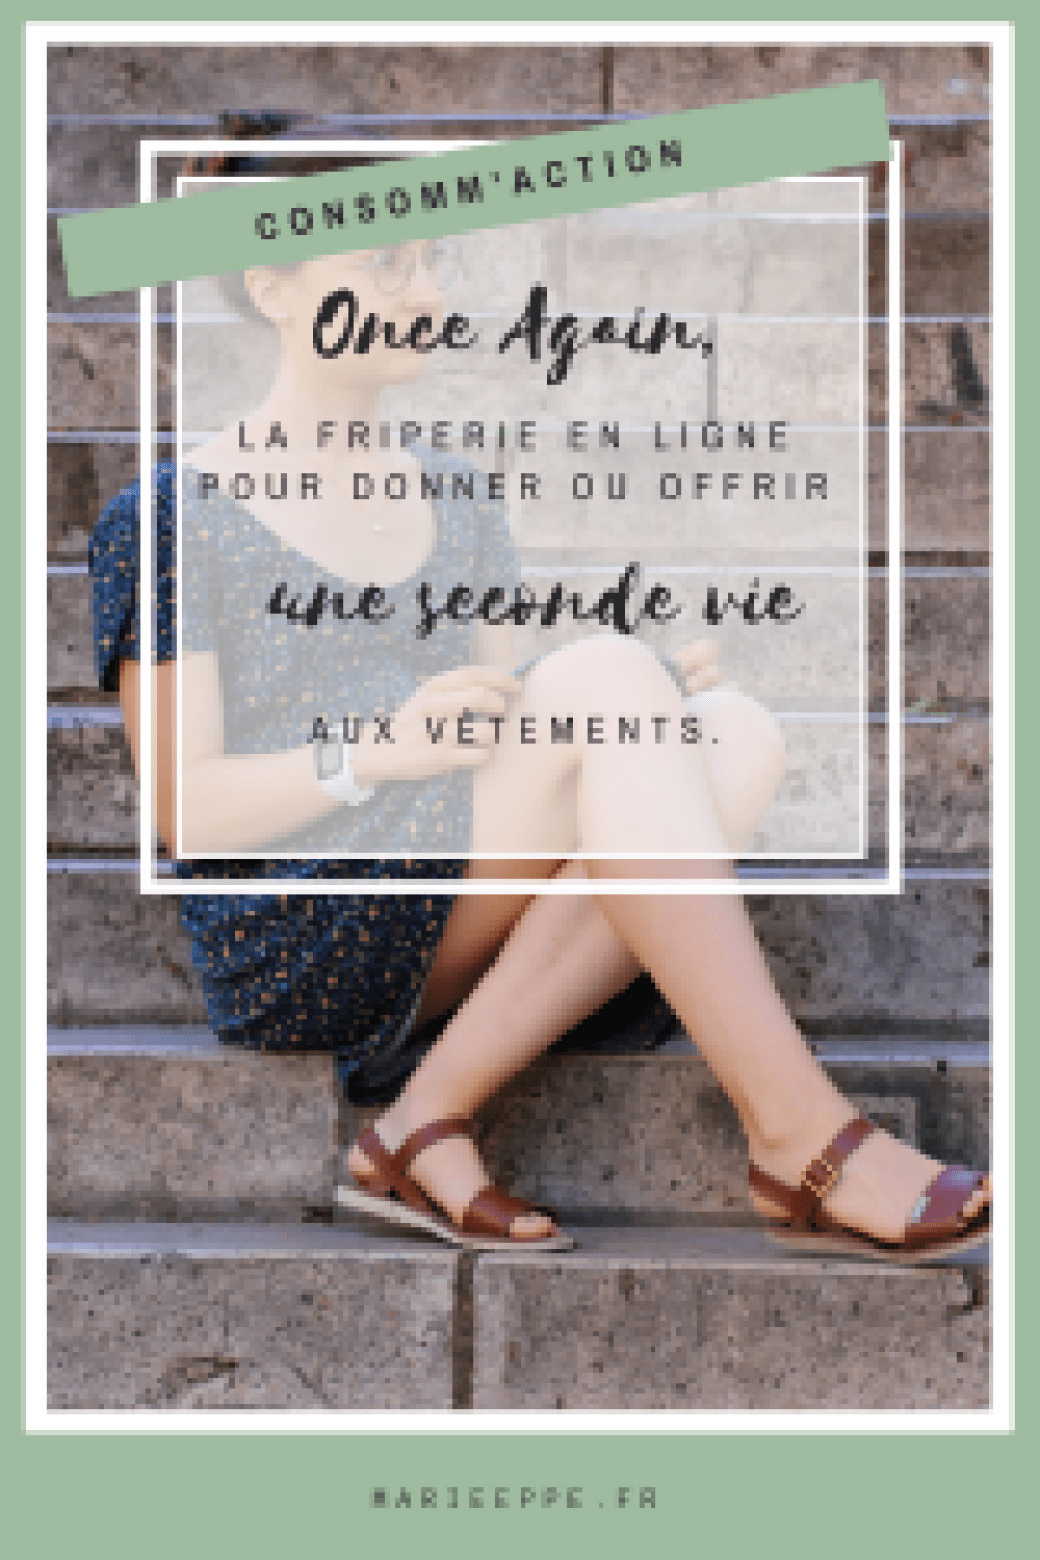 OnceAgain-boutique-videdressing-eshop-mode-ethique-responsable-fashion-slowfashion-consommaction-secondemain-occasion-secondevie